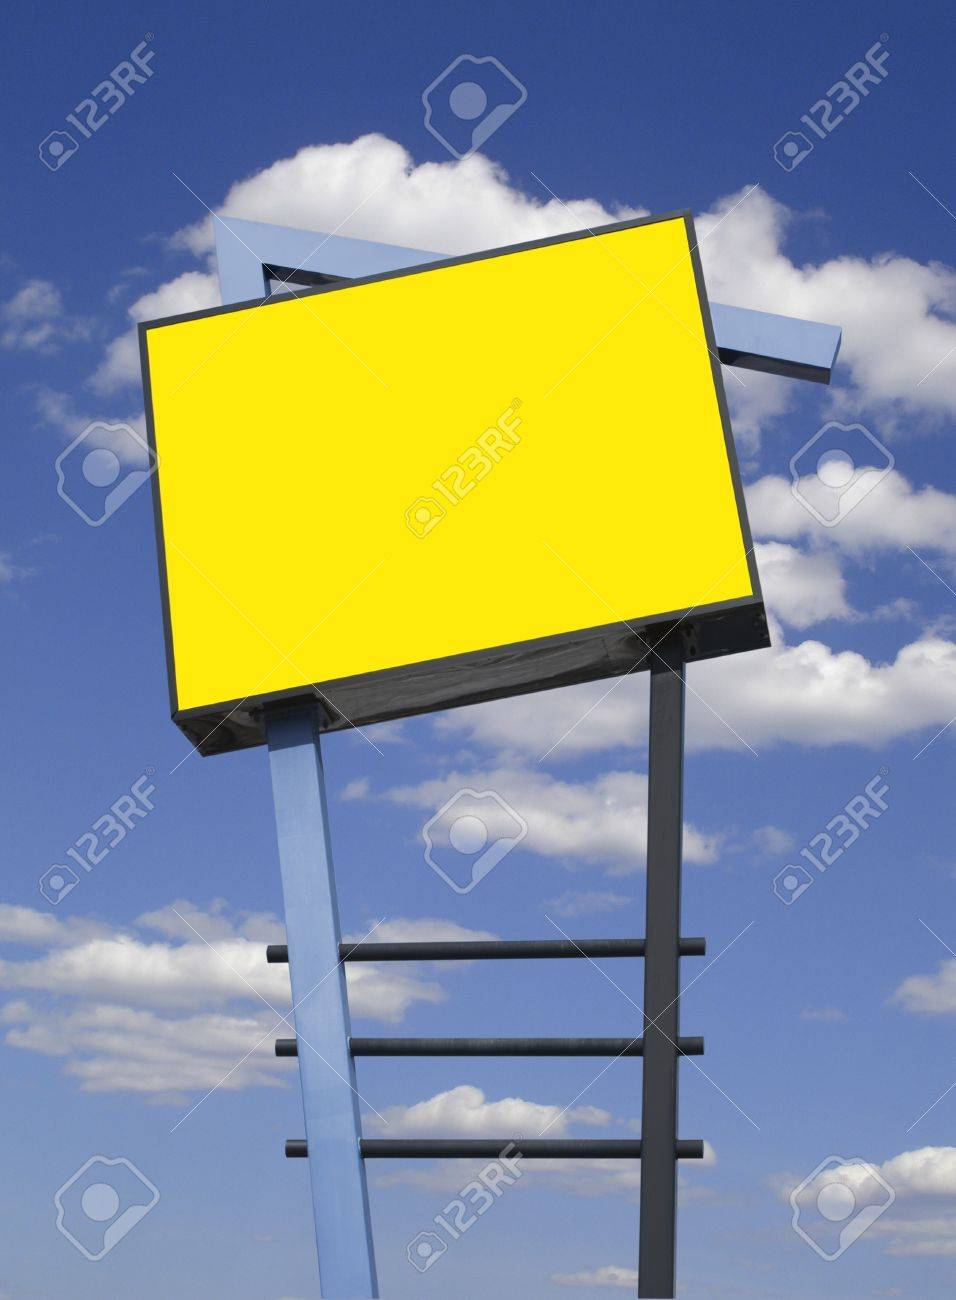 Store advertising sign in yellow over cloudy sky, isolated Stock Photo - 9116716